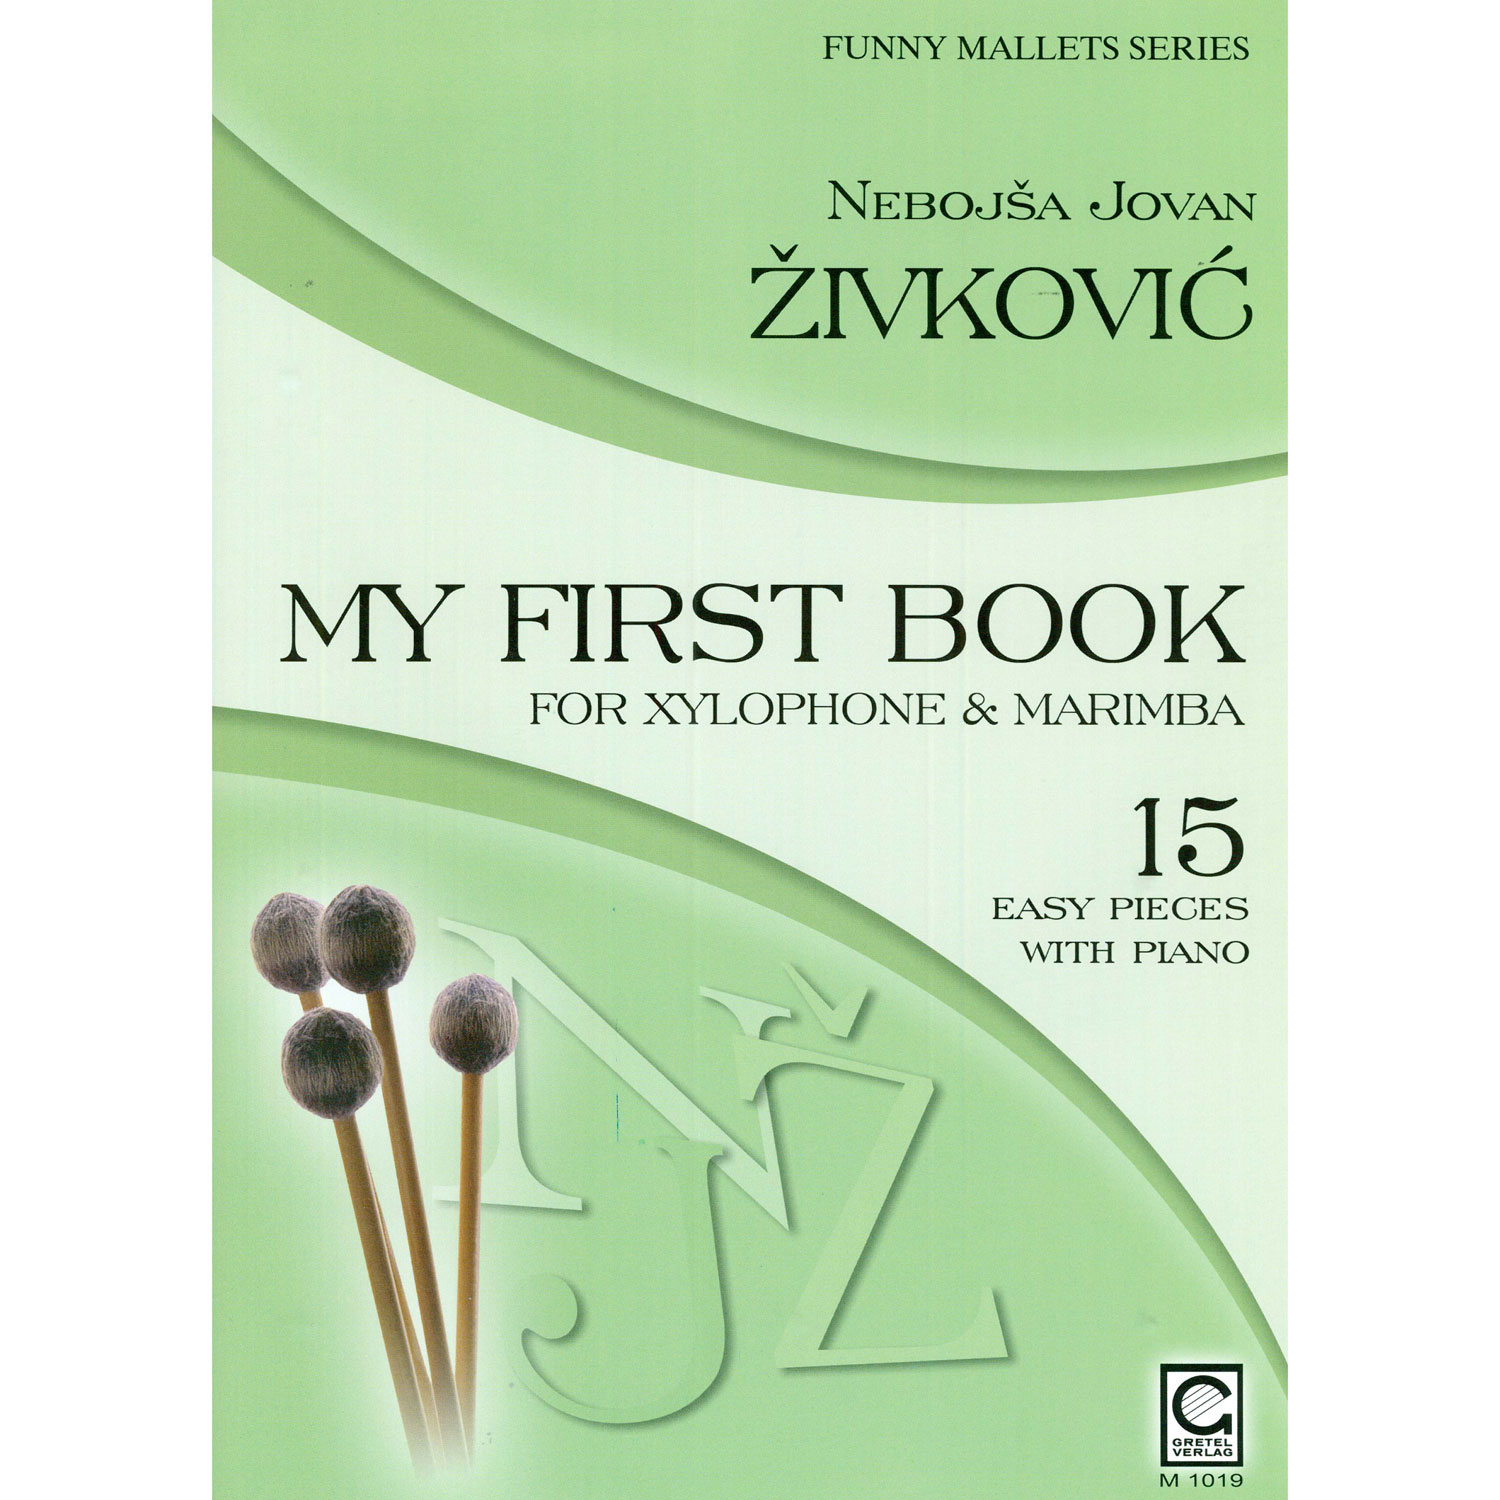 Funny Mallets - My First Book for Xylophone and Marimba by Nebojsa Jovan Zivkovic